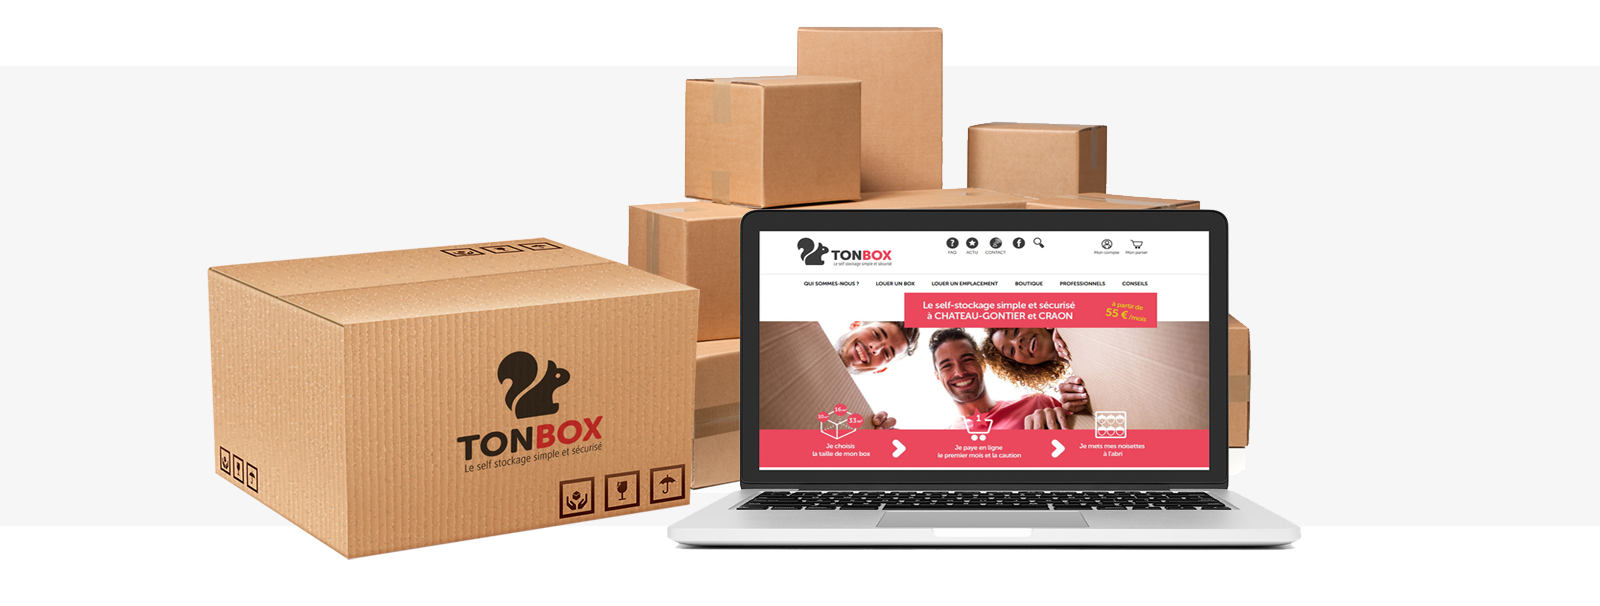 Site e-commerce TONBOX